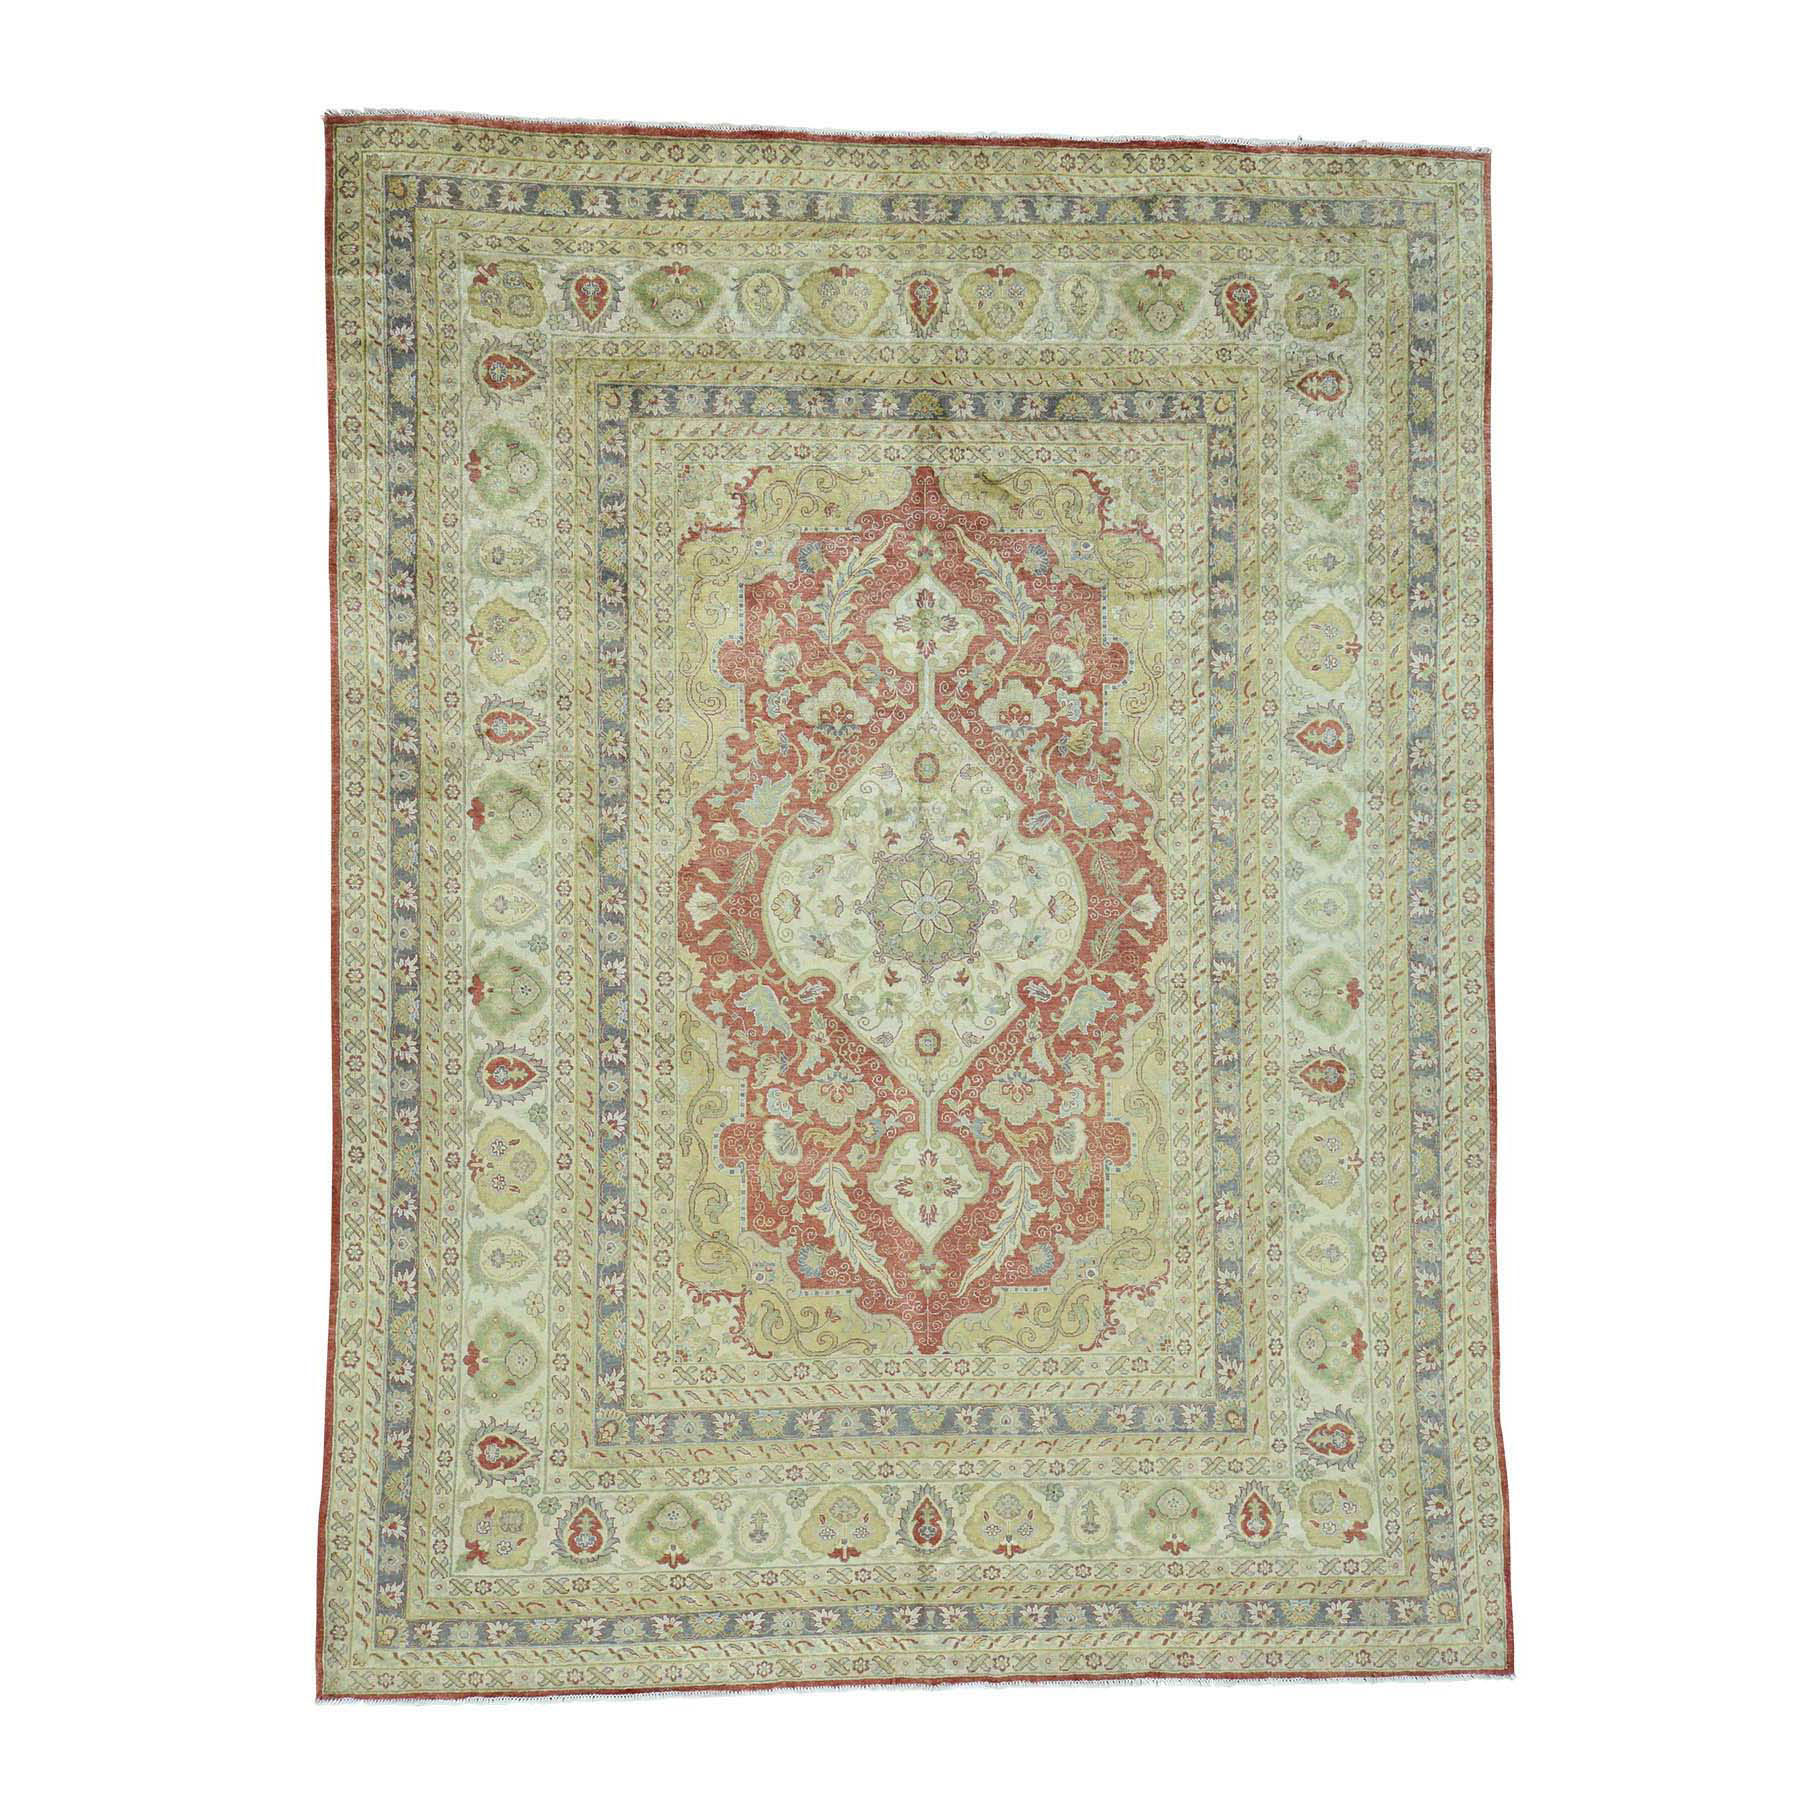 "9'X11'9"" Pure Silk Antiqued Ottoman Design Hand-Knotted Oriental Rug moac60cd"